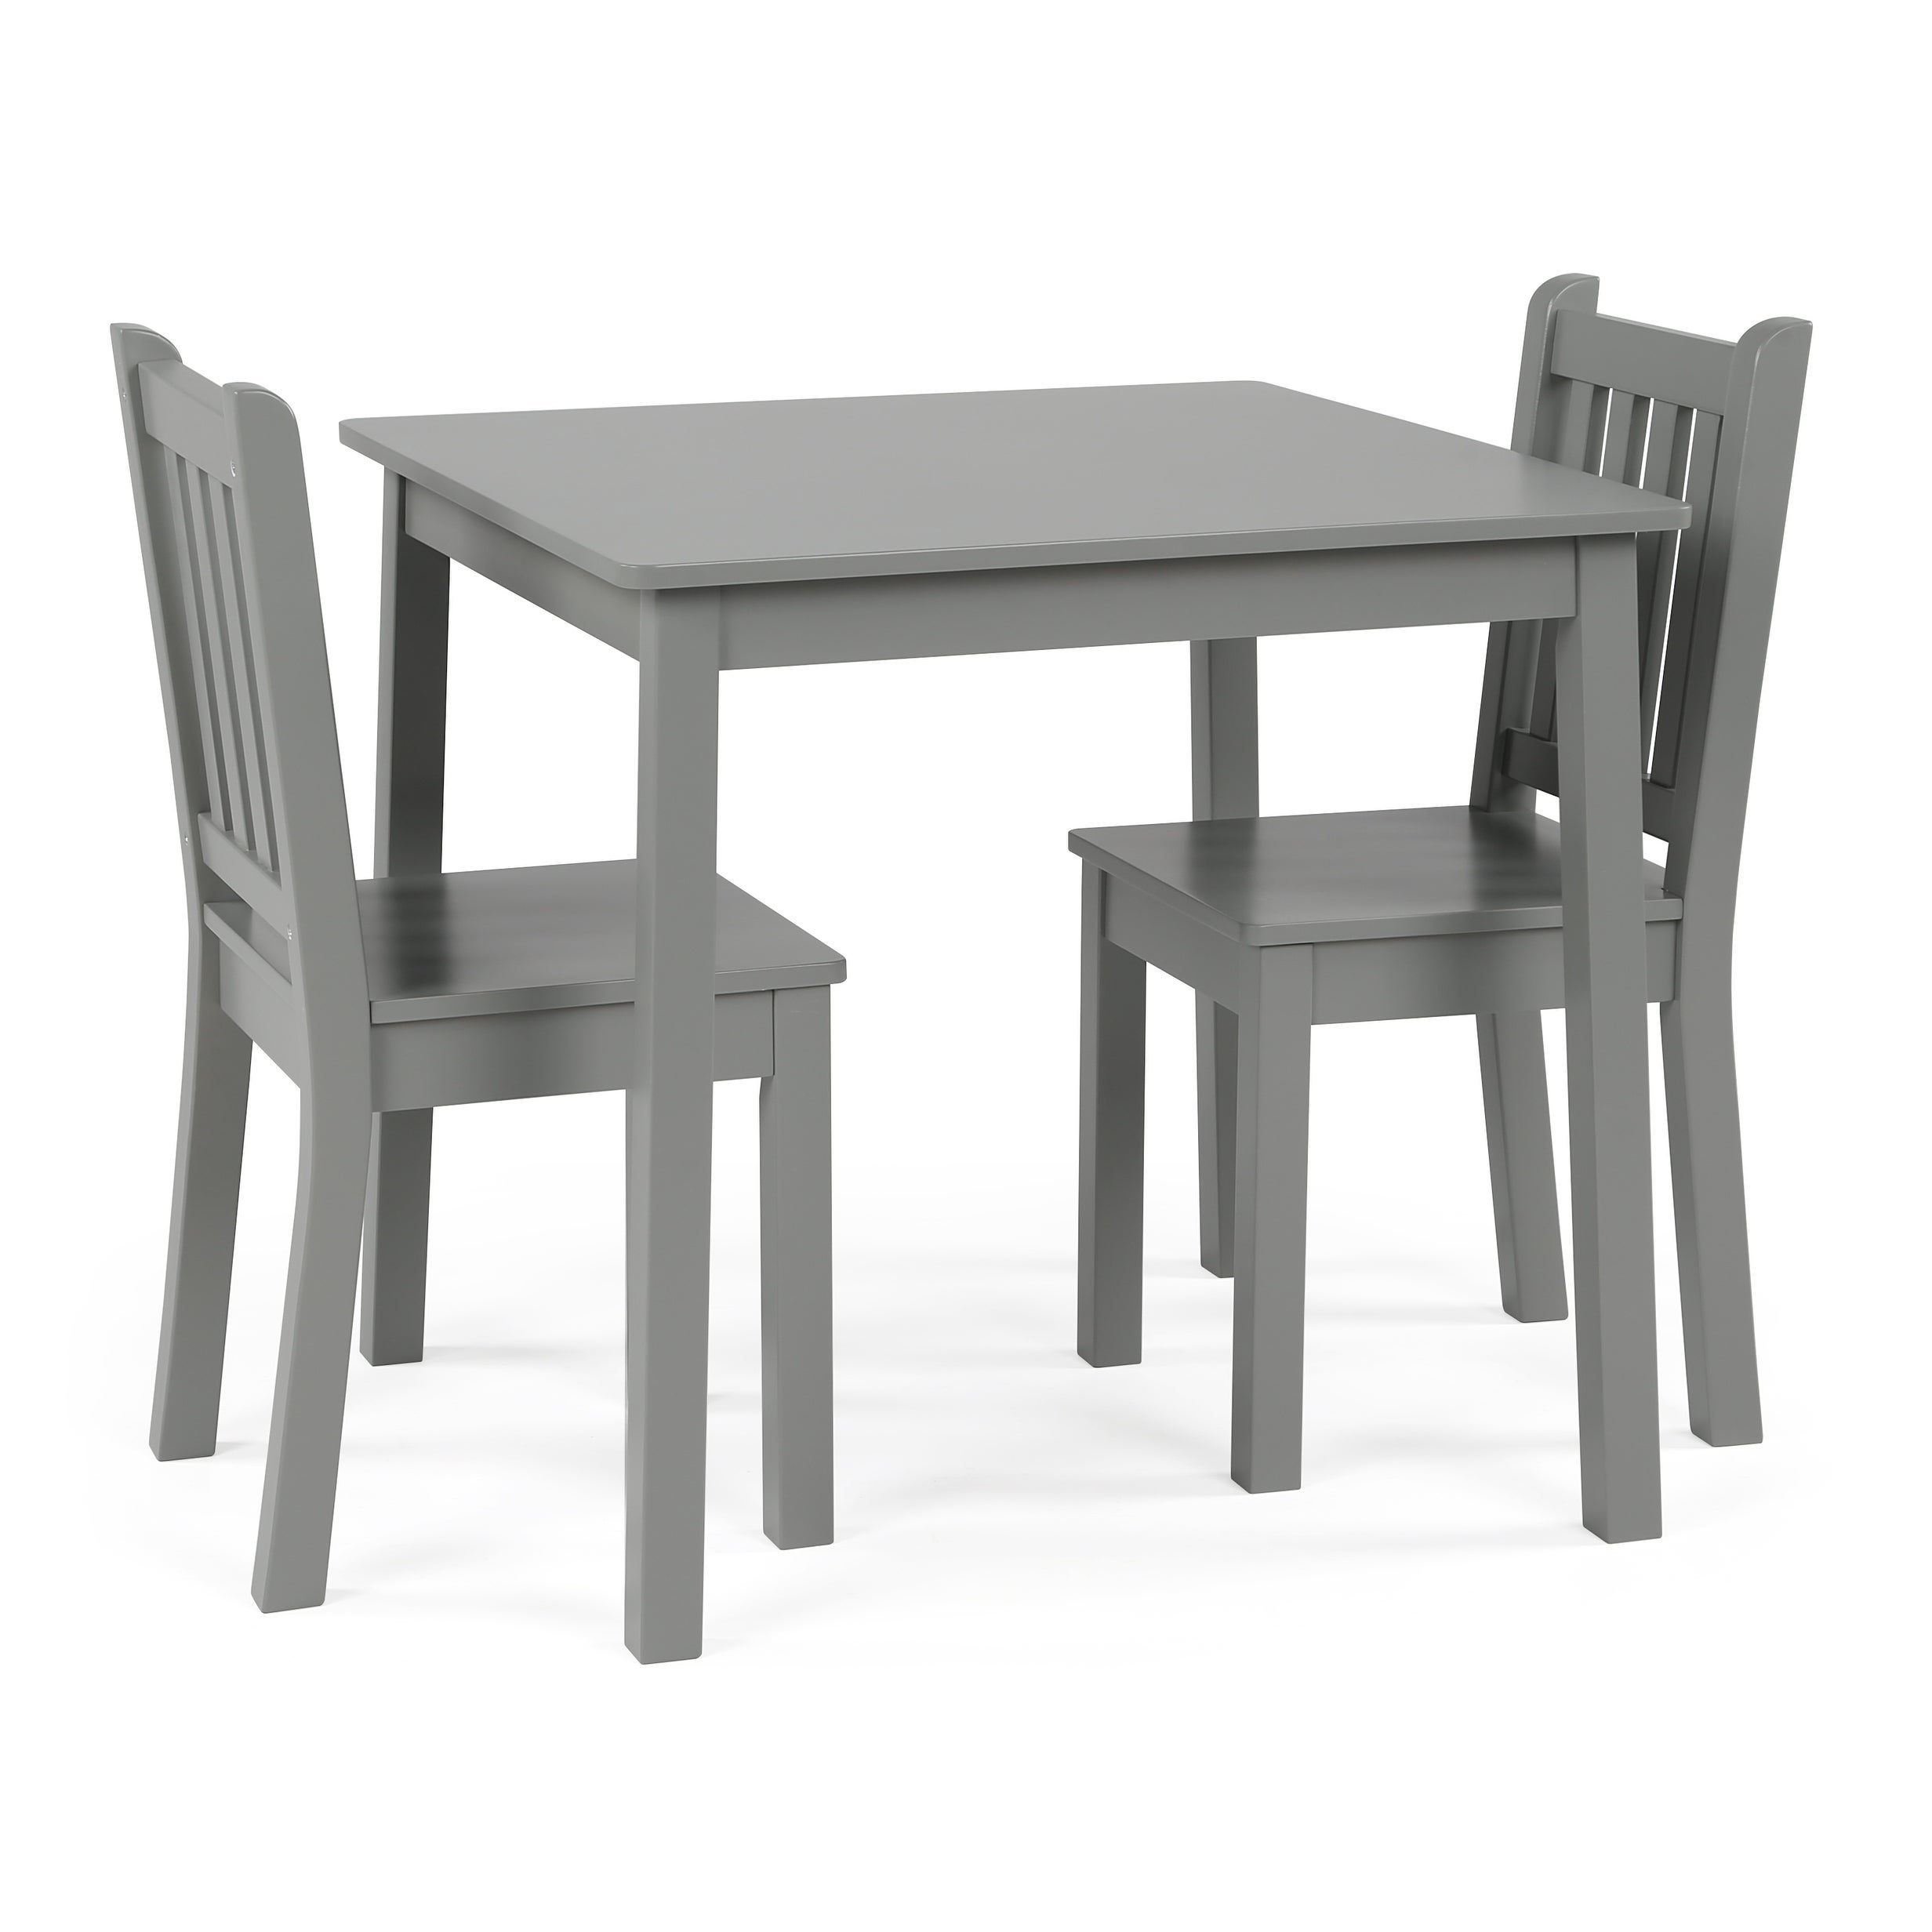 Shop Wood Kids Table Chairs 3 Piece Set Grey Overstock 19508685